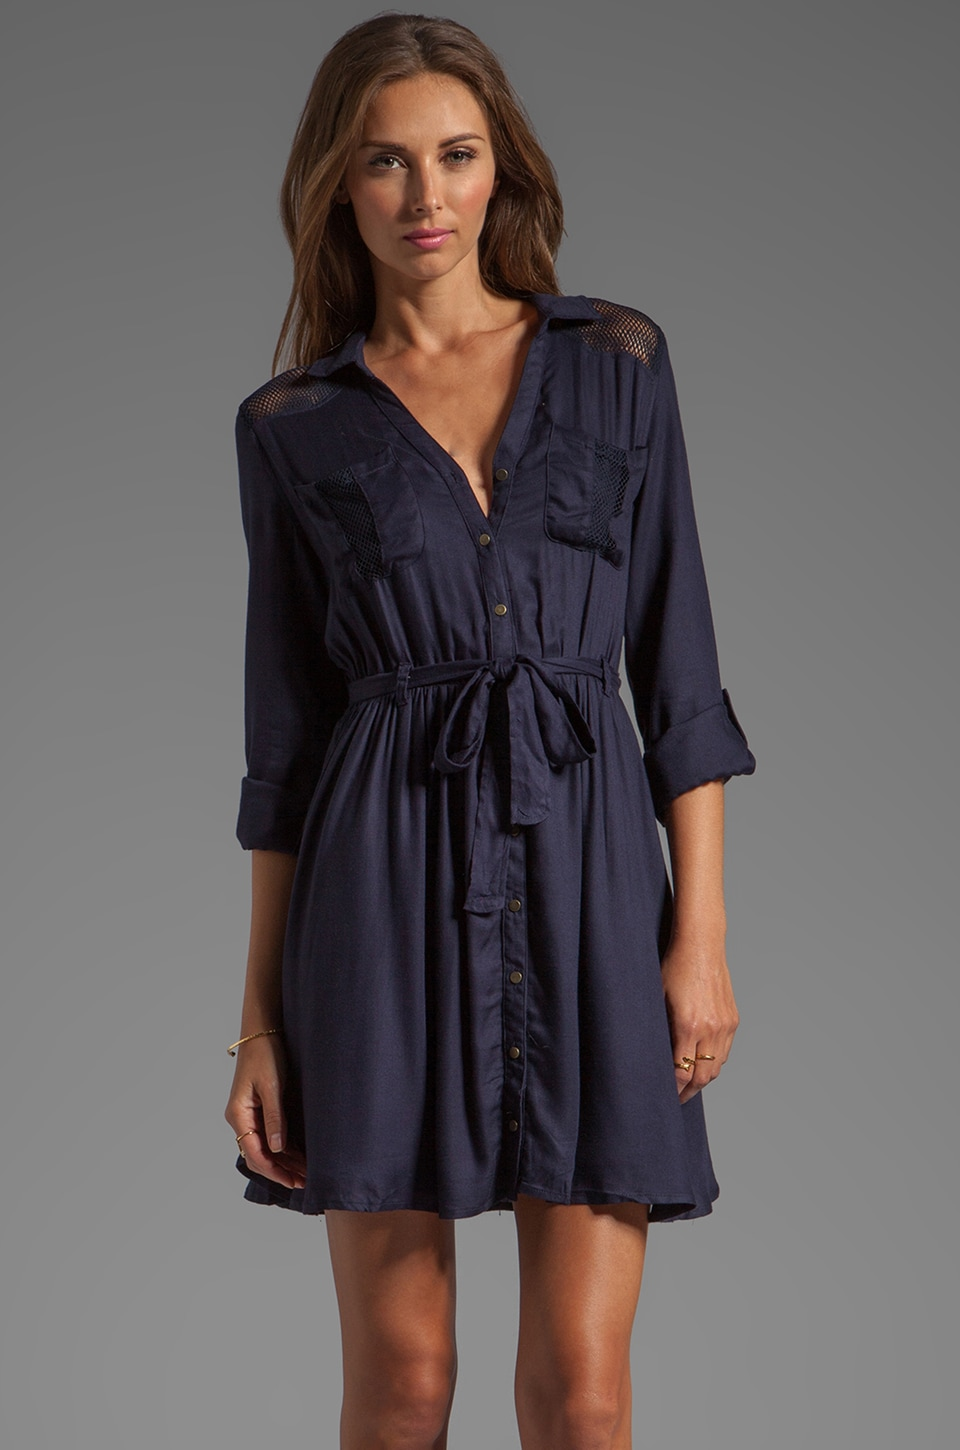 Greylin Jackson Shirt Dress in Navy